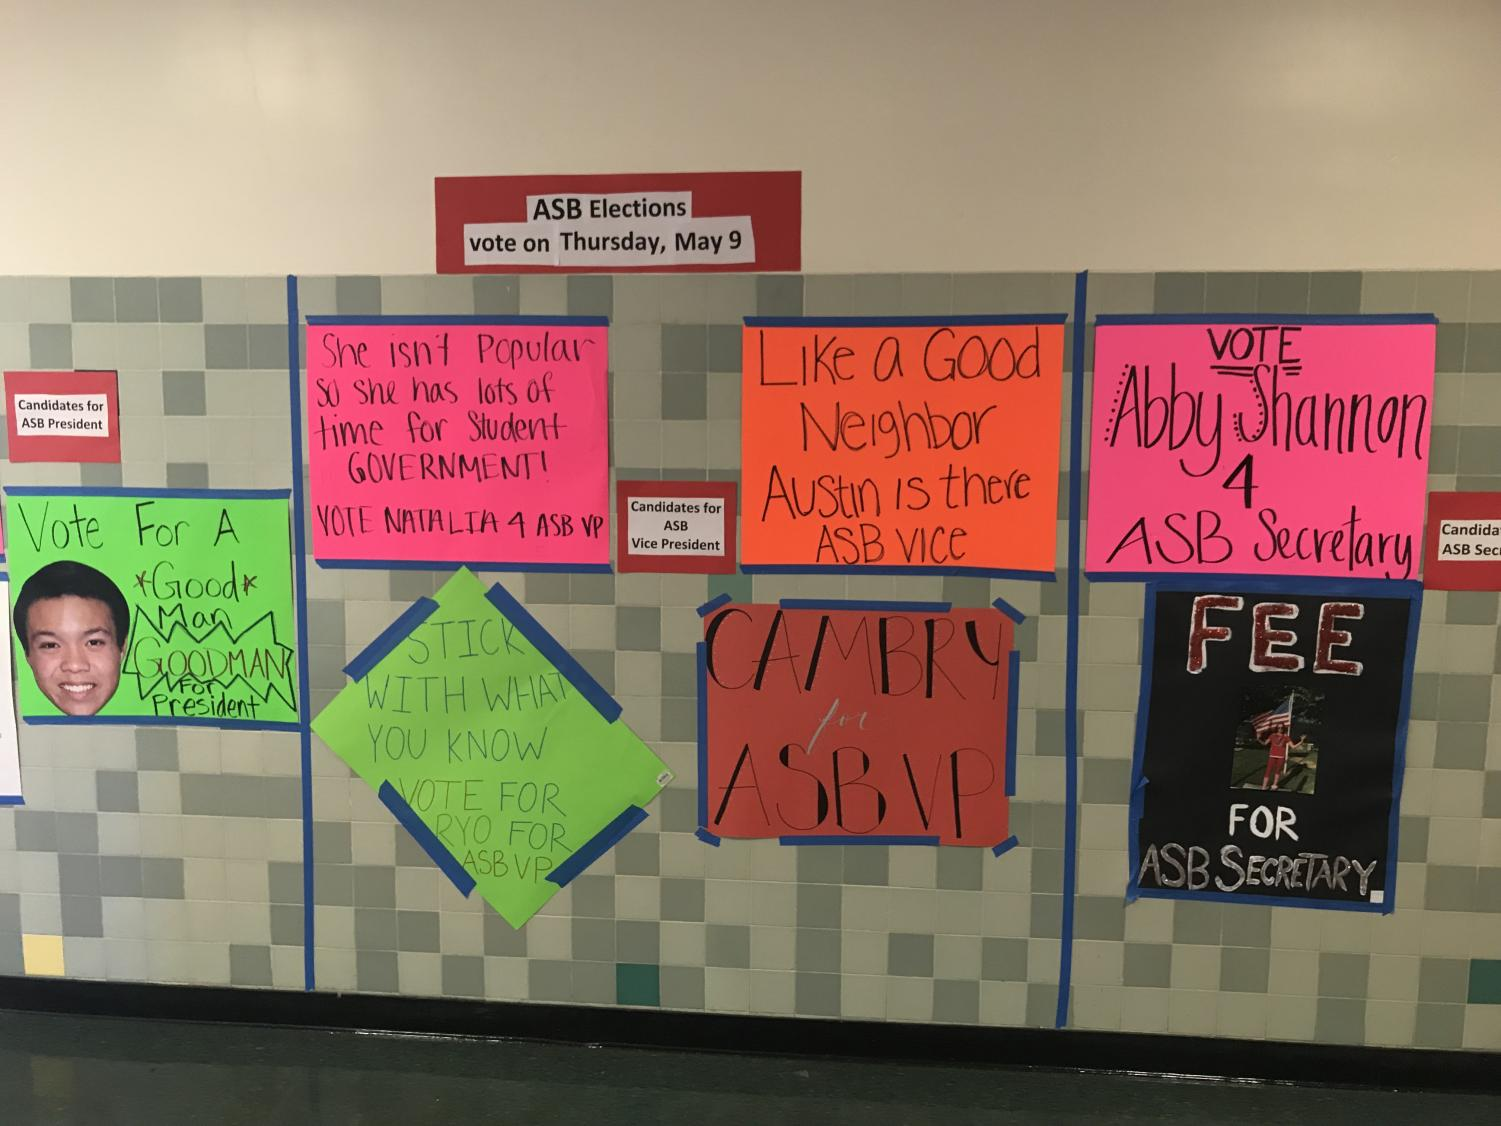 Students put up election posters in the halls for the ASB election this week. Results will be posted at the end of the day on May 10.